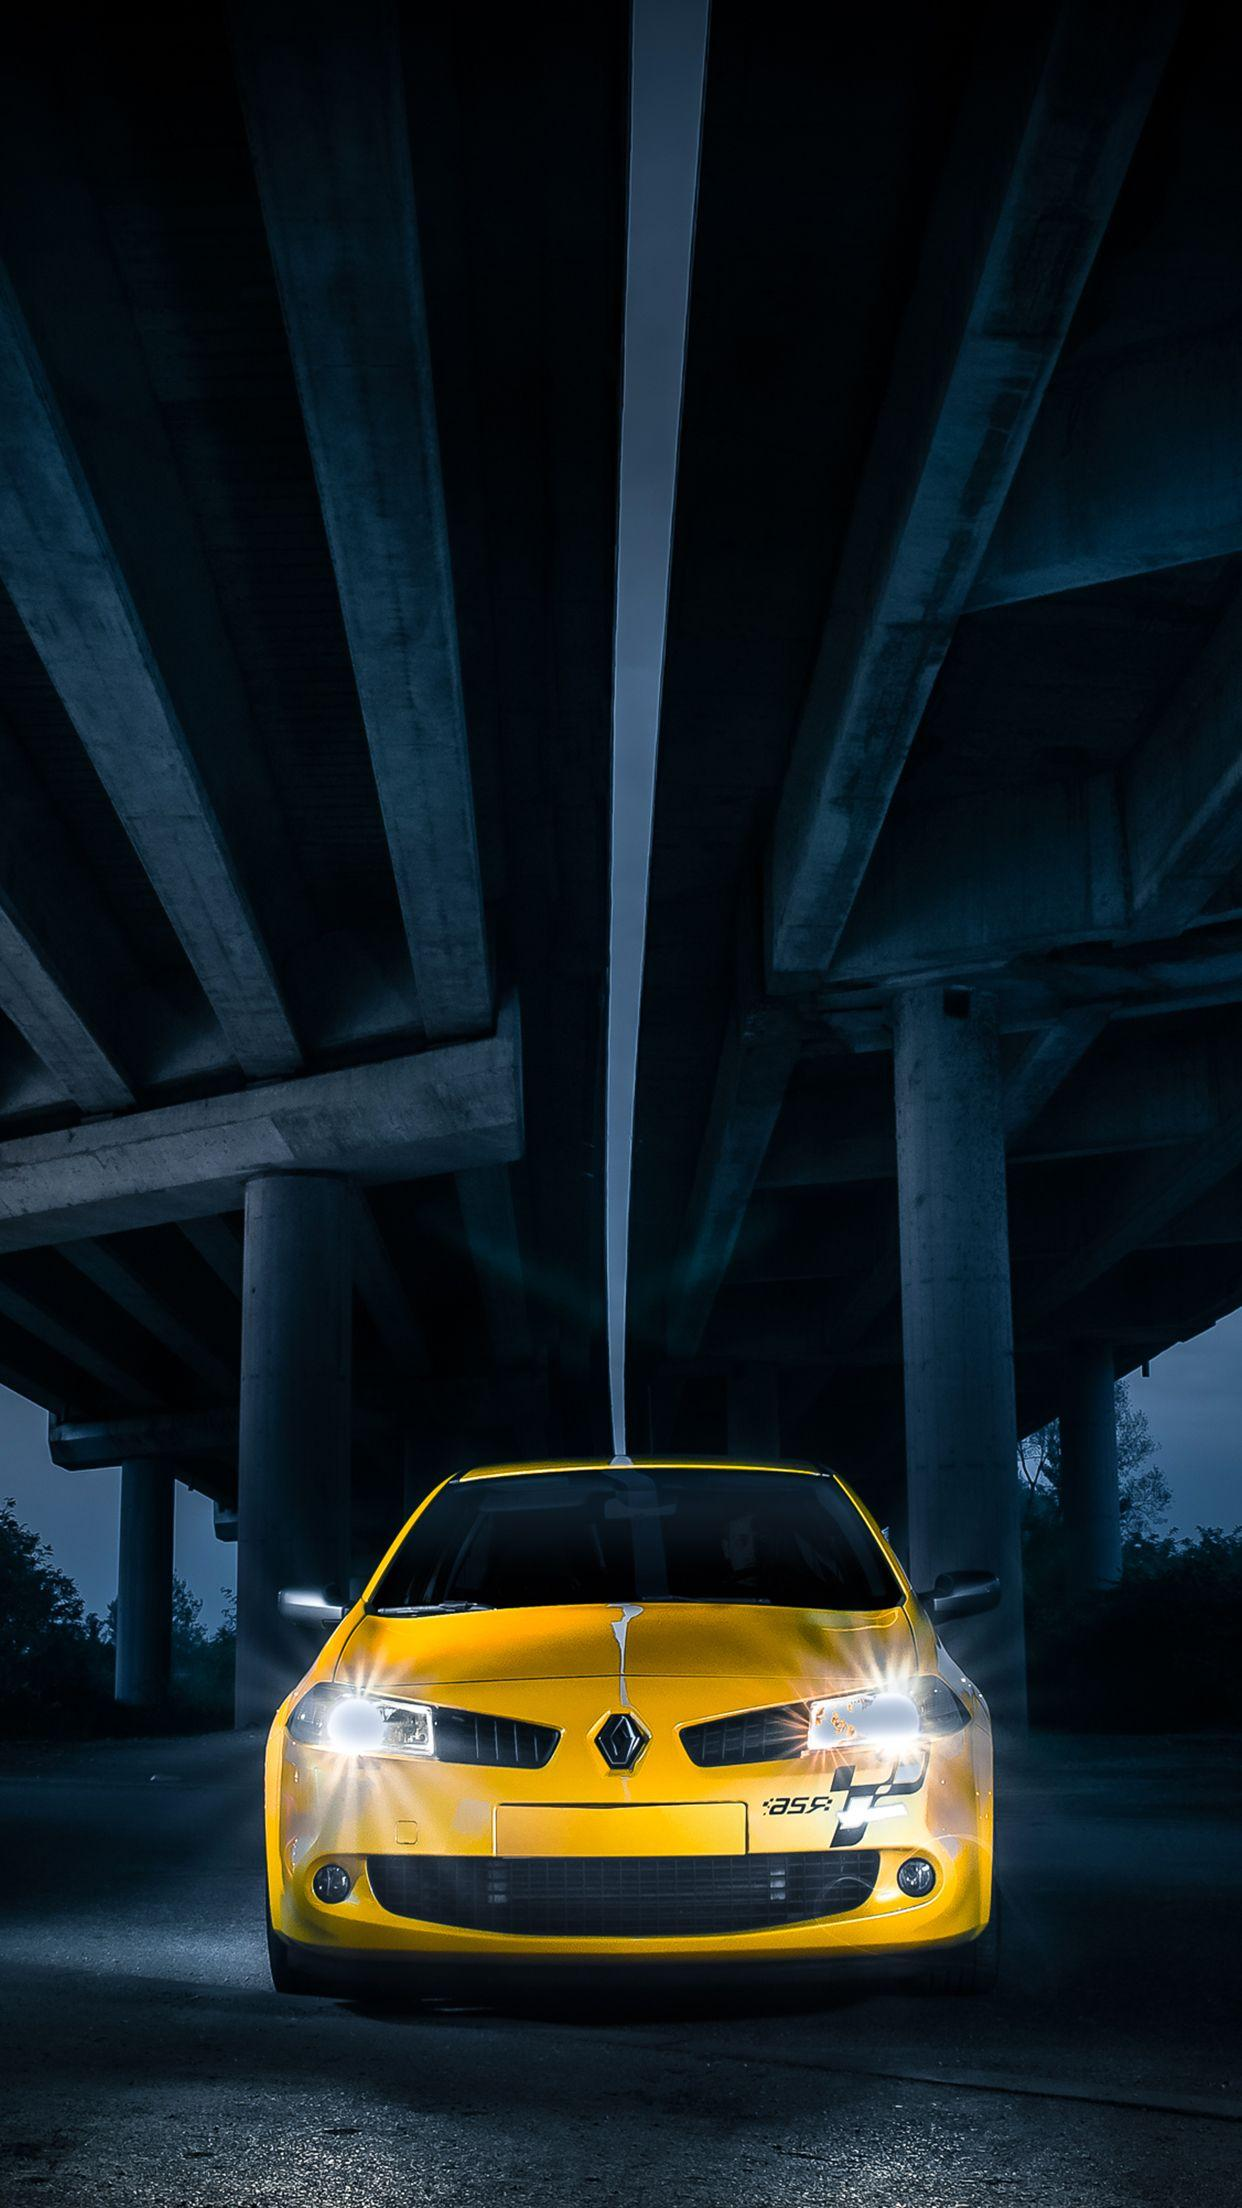 Megane 2 RS Wallpapers for iPhone X, 8, 7, 6